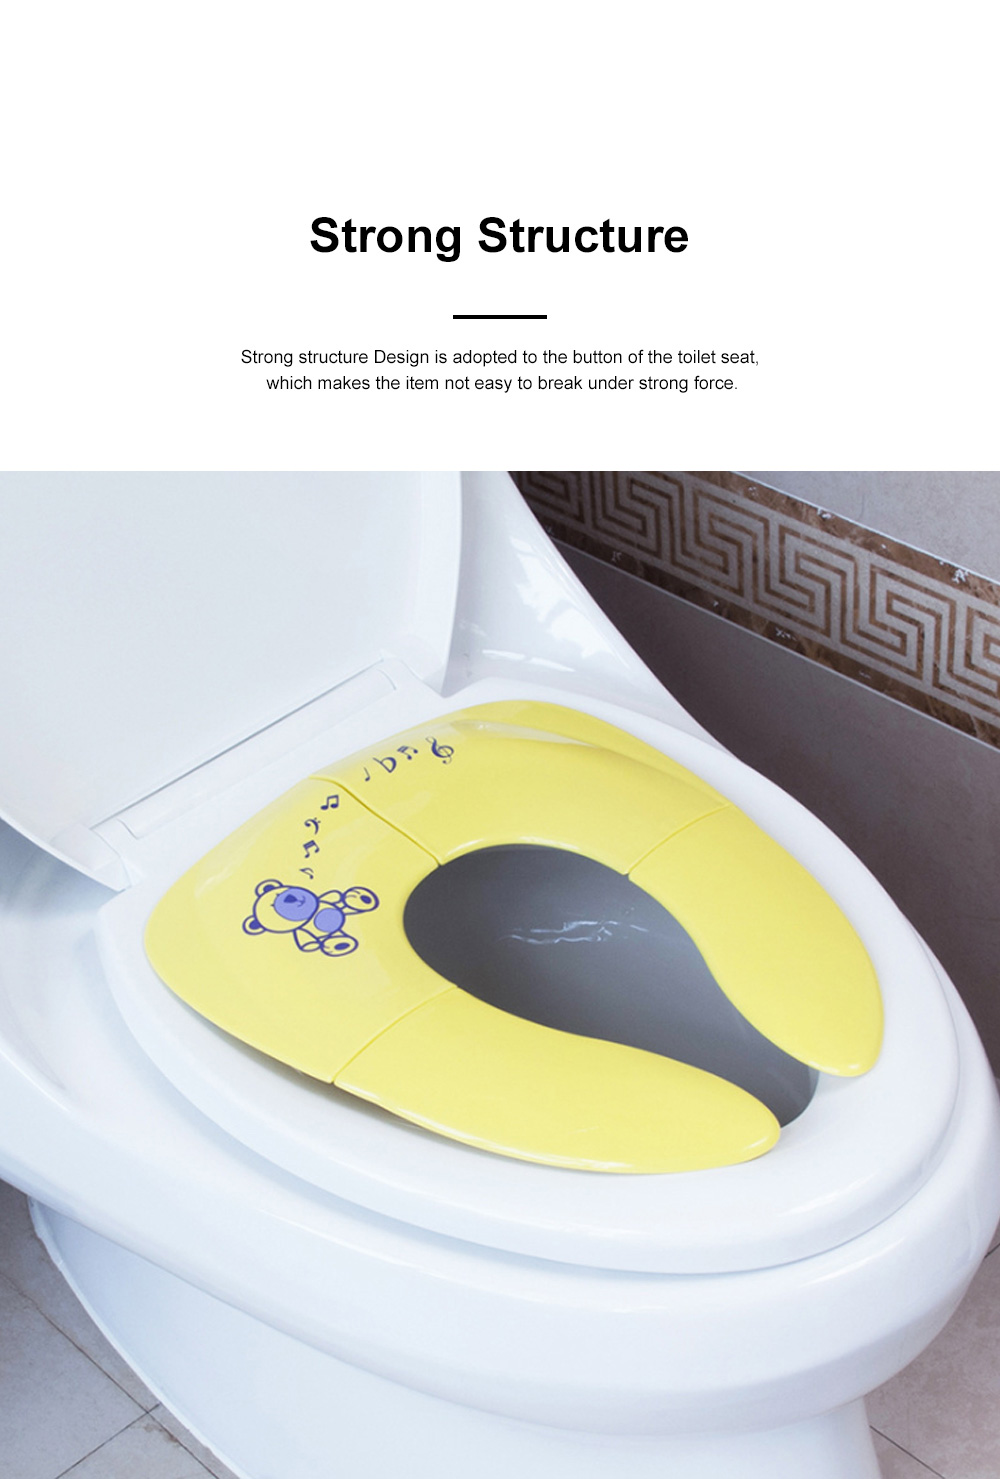 Portable Foldable Outdoors Traveling Children Safety Toilet Seat with Anti-skid Pads Buckles Kids Toilet Cushion 5